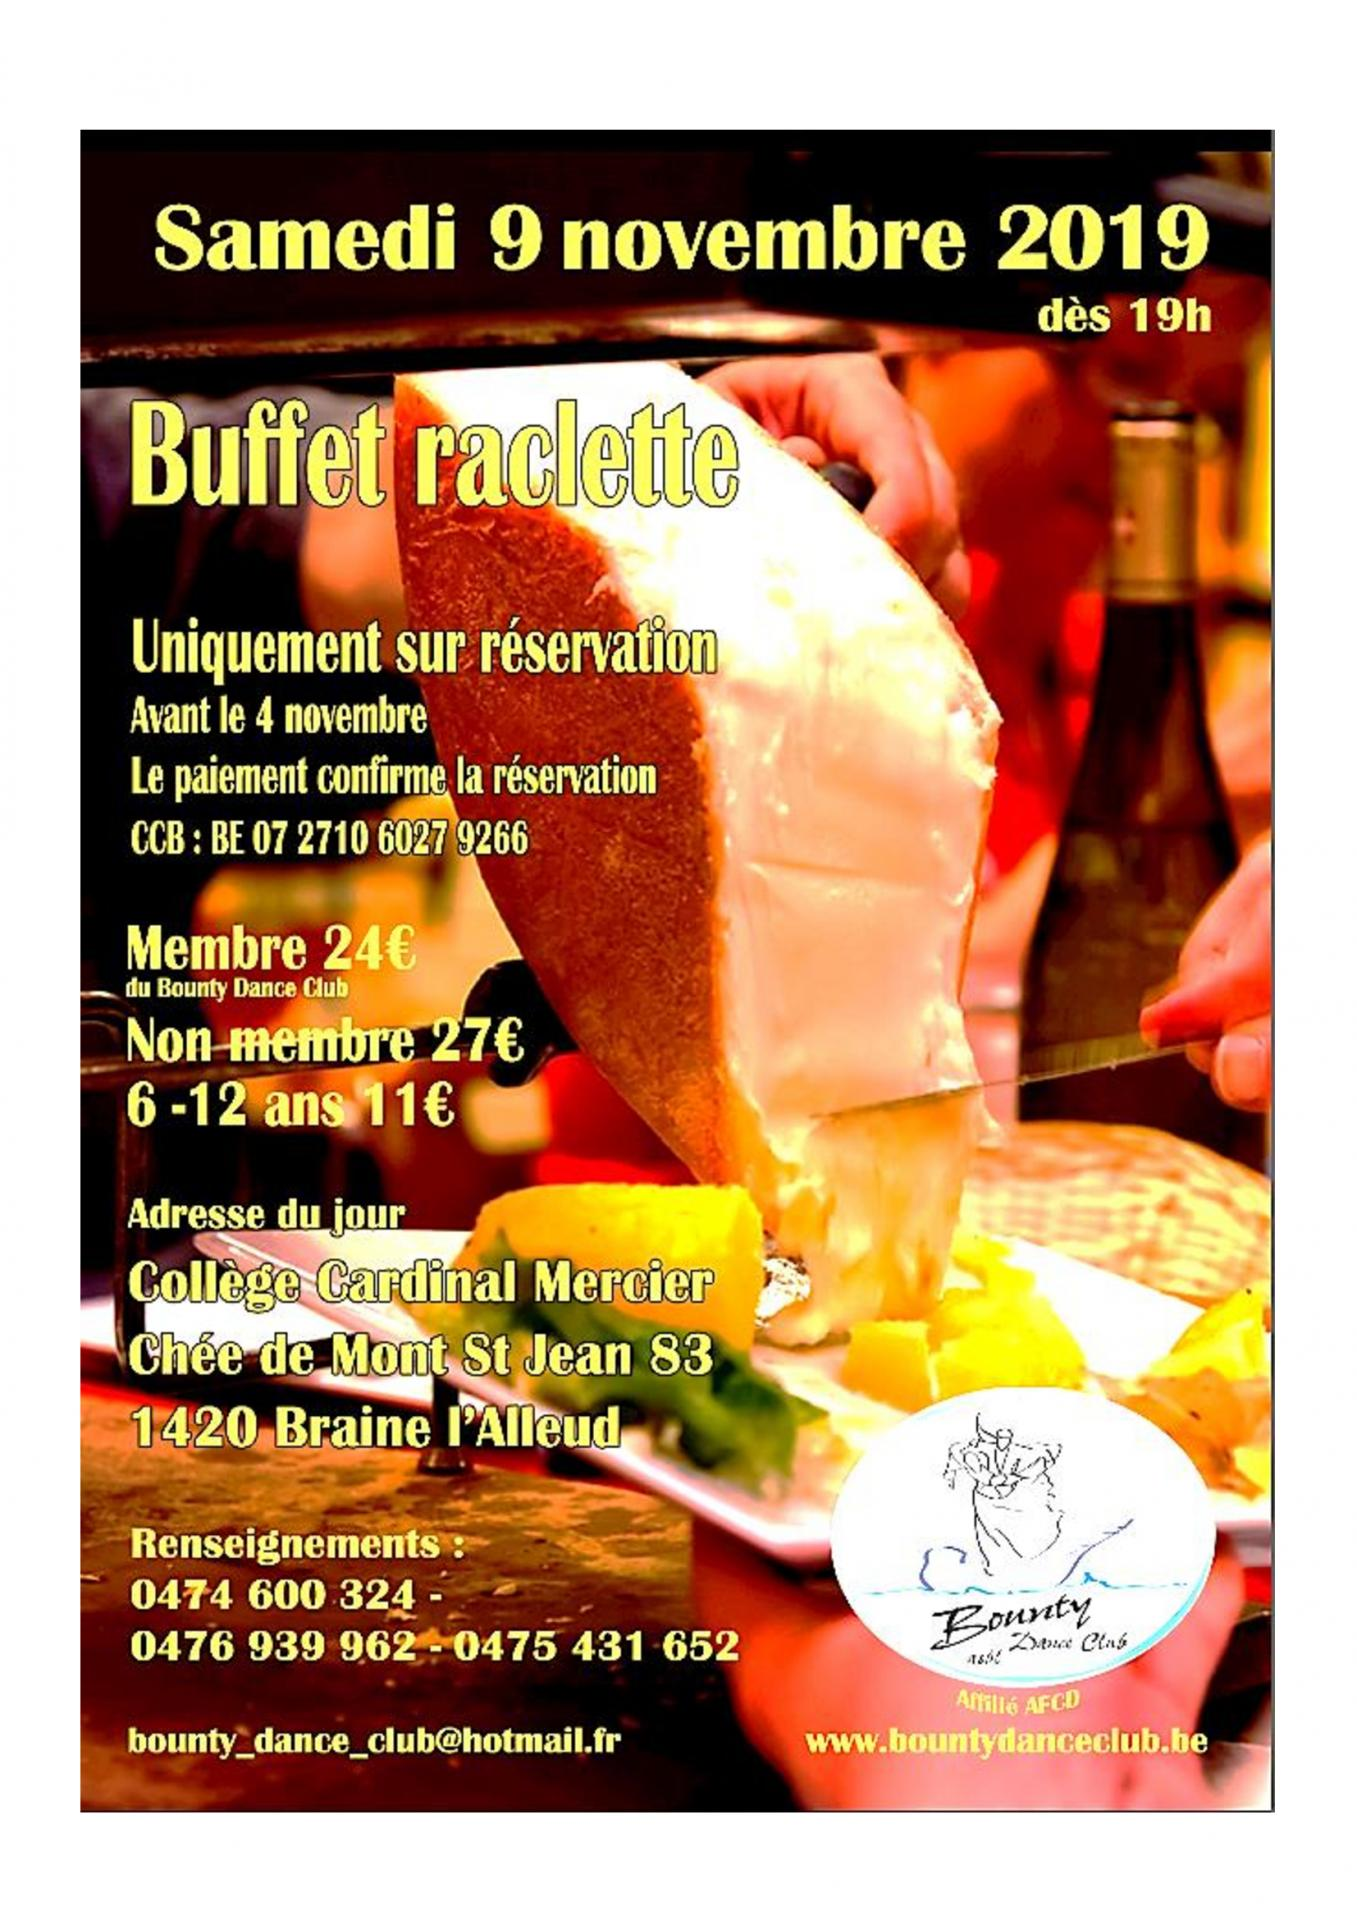 Affiche raclette bounty